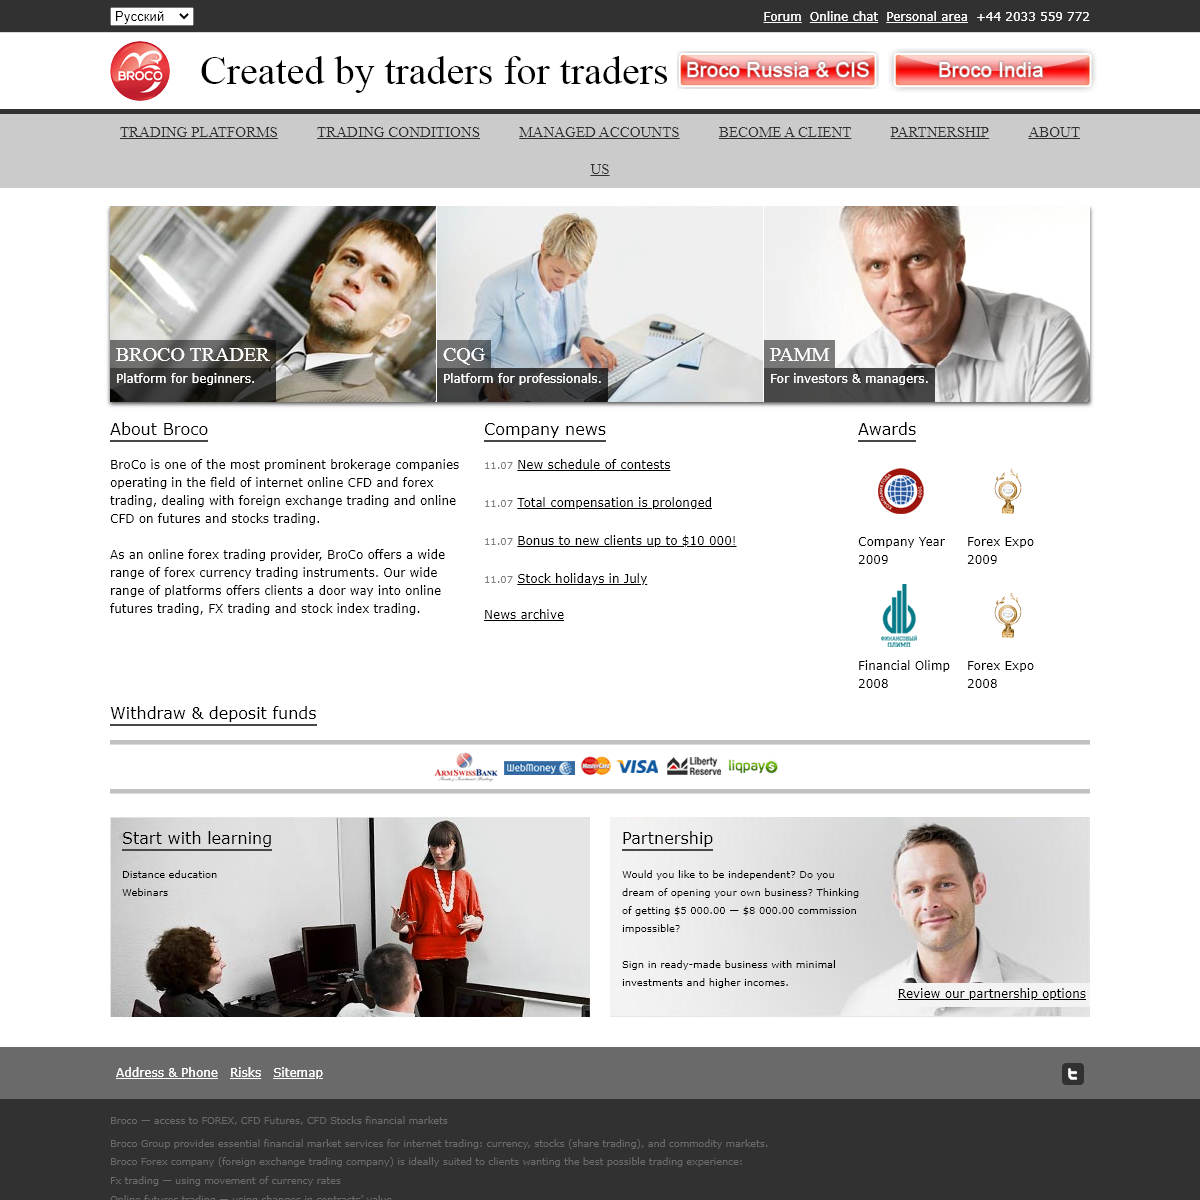 Broco Company - Online Forex Trading, Online Futures Trading, Stock Indexes Trading, Forex Currency Trading System. FX Trading (